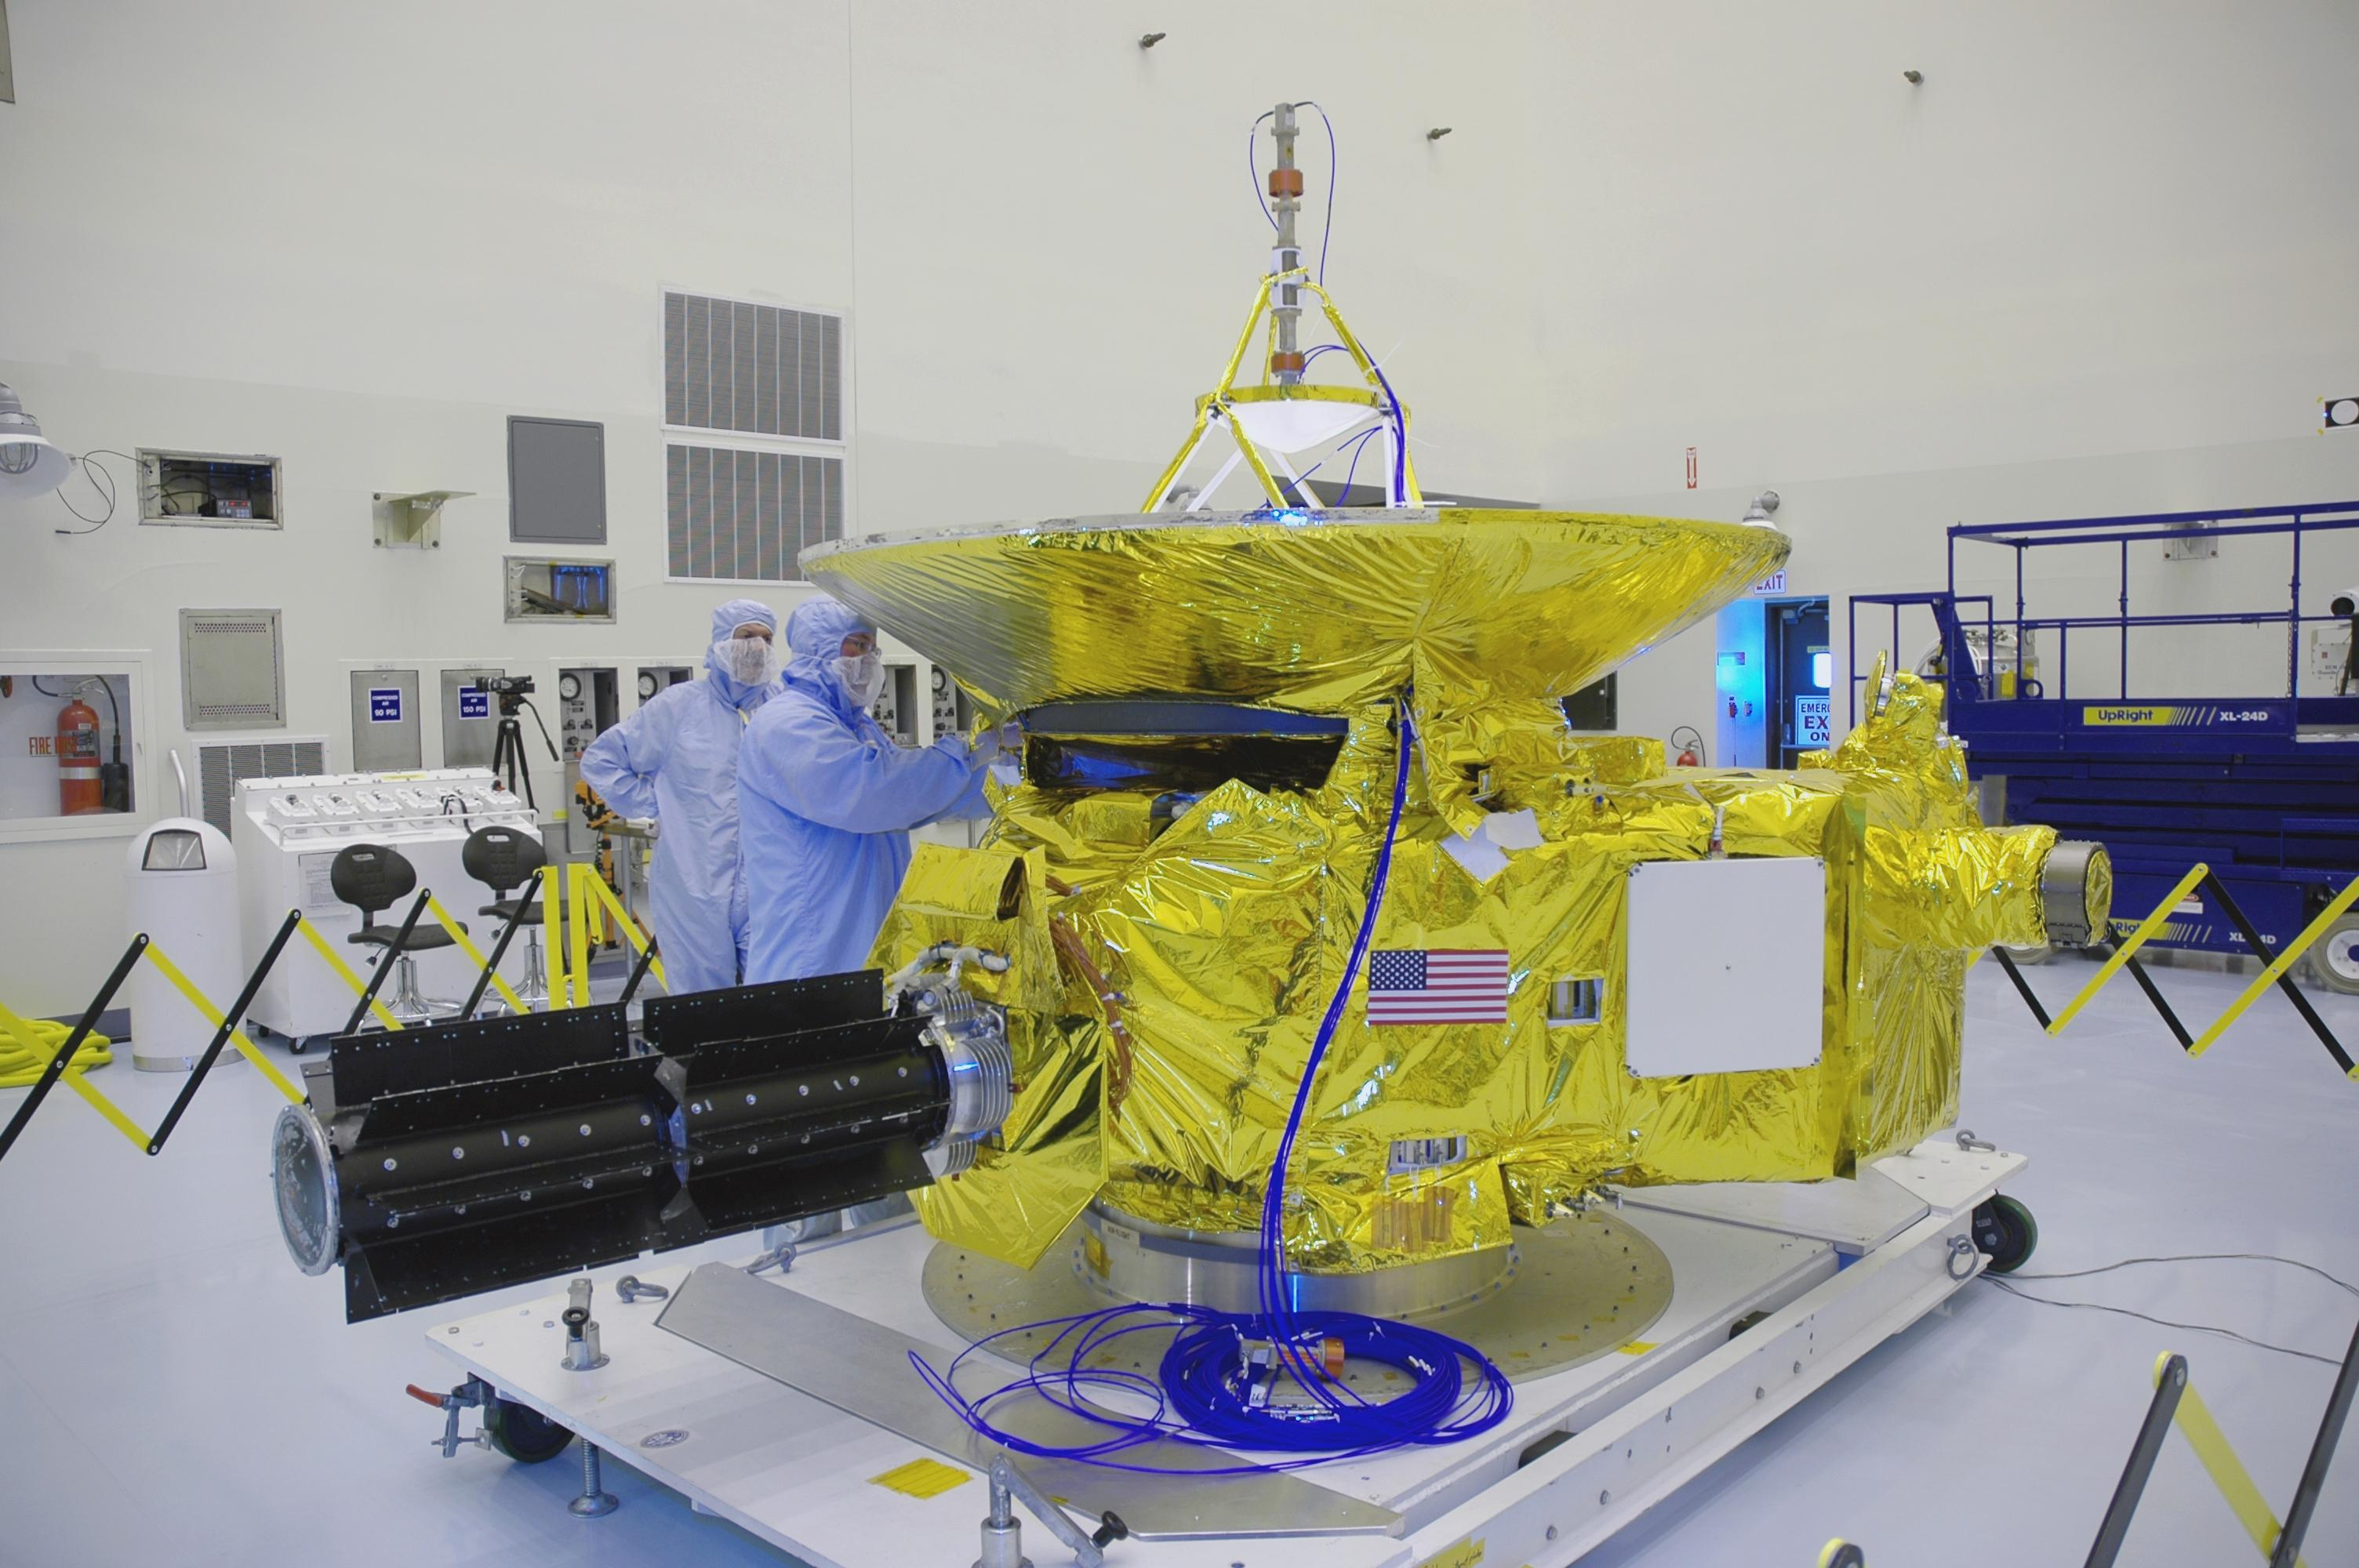 u.s. flag visible on spacecraft in clean room